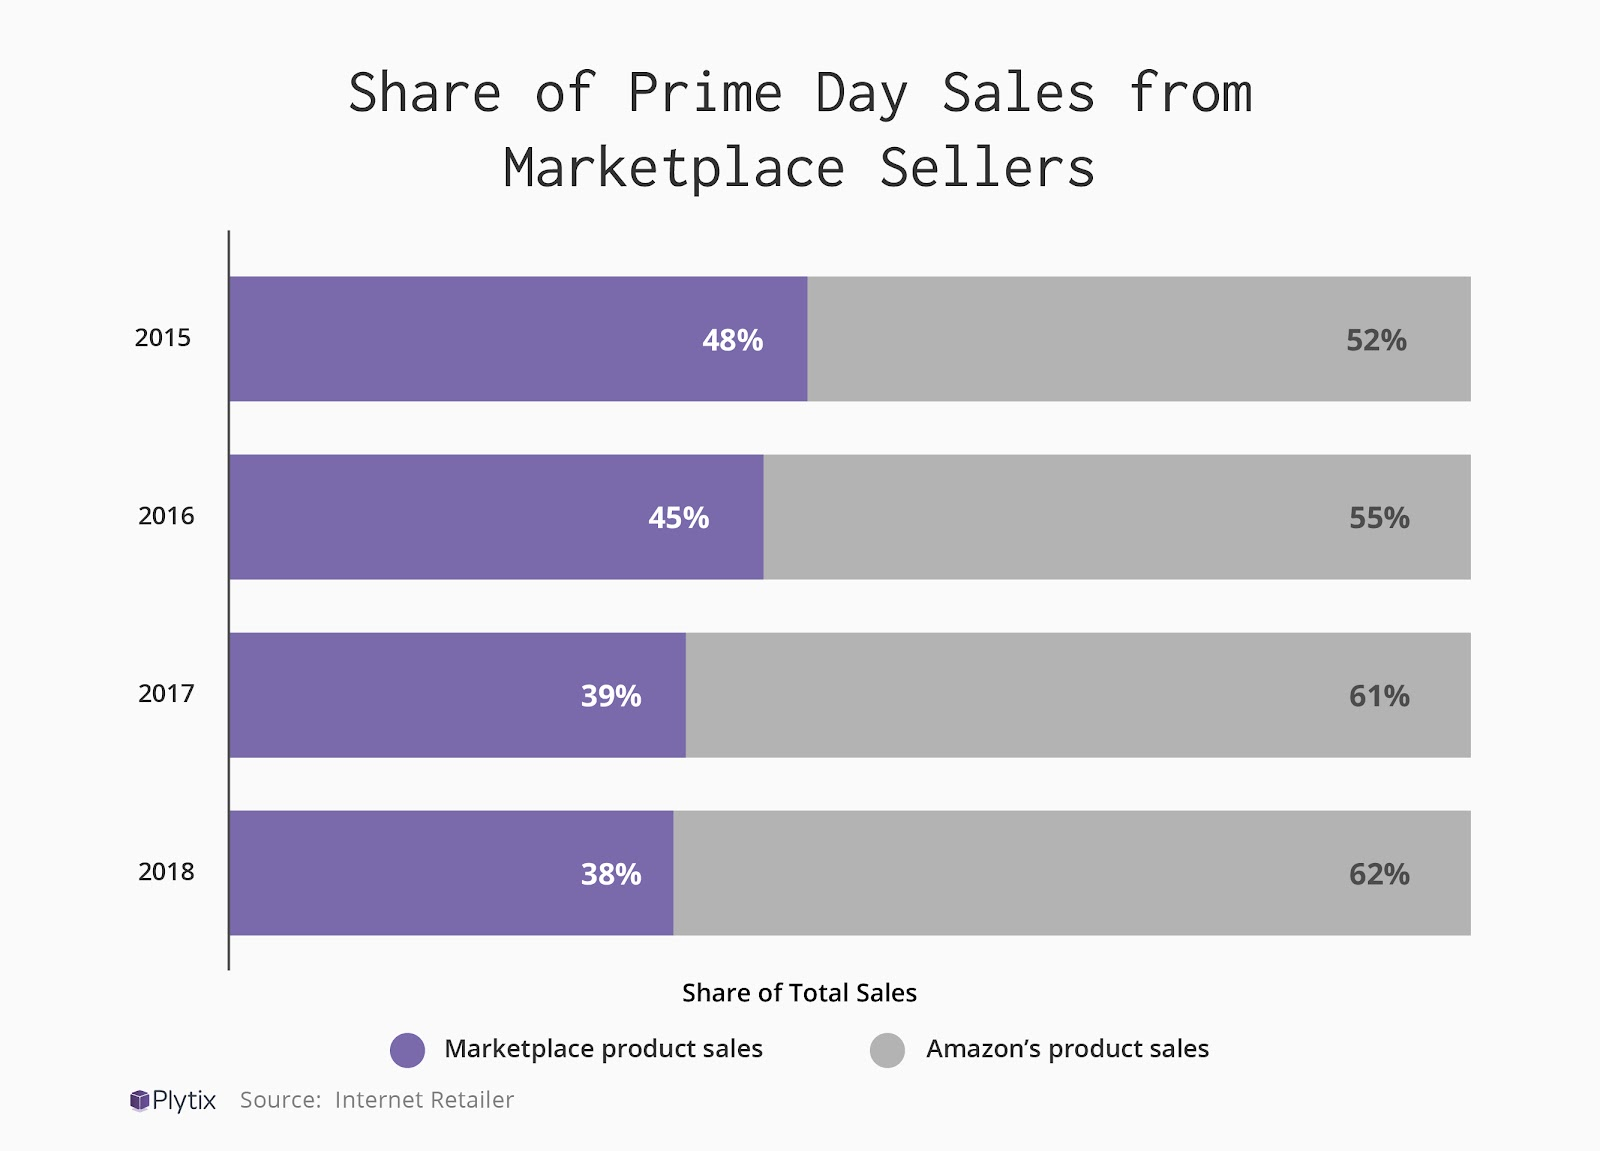 Over time, Amazon's own products have taken more of a share of the total sales and profit than marketplace products.